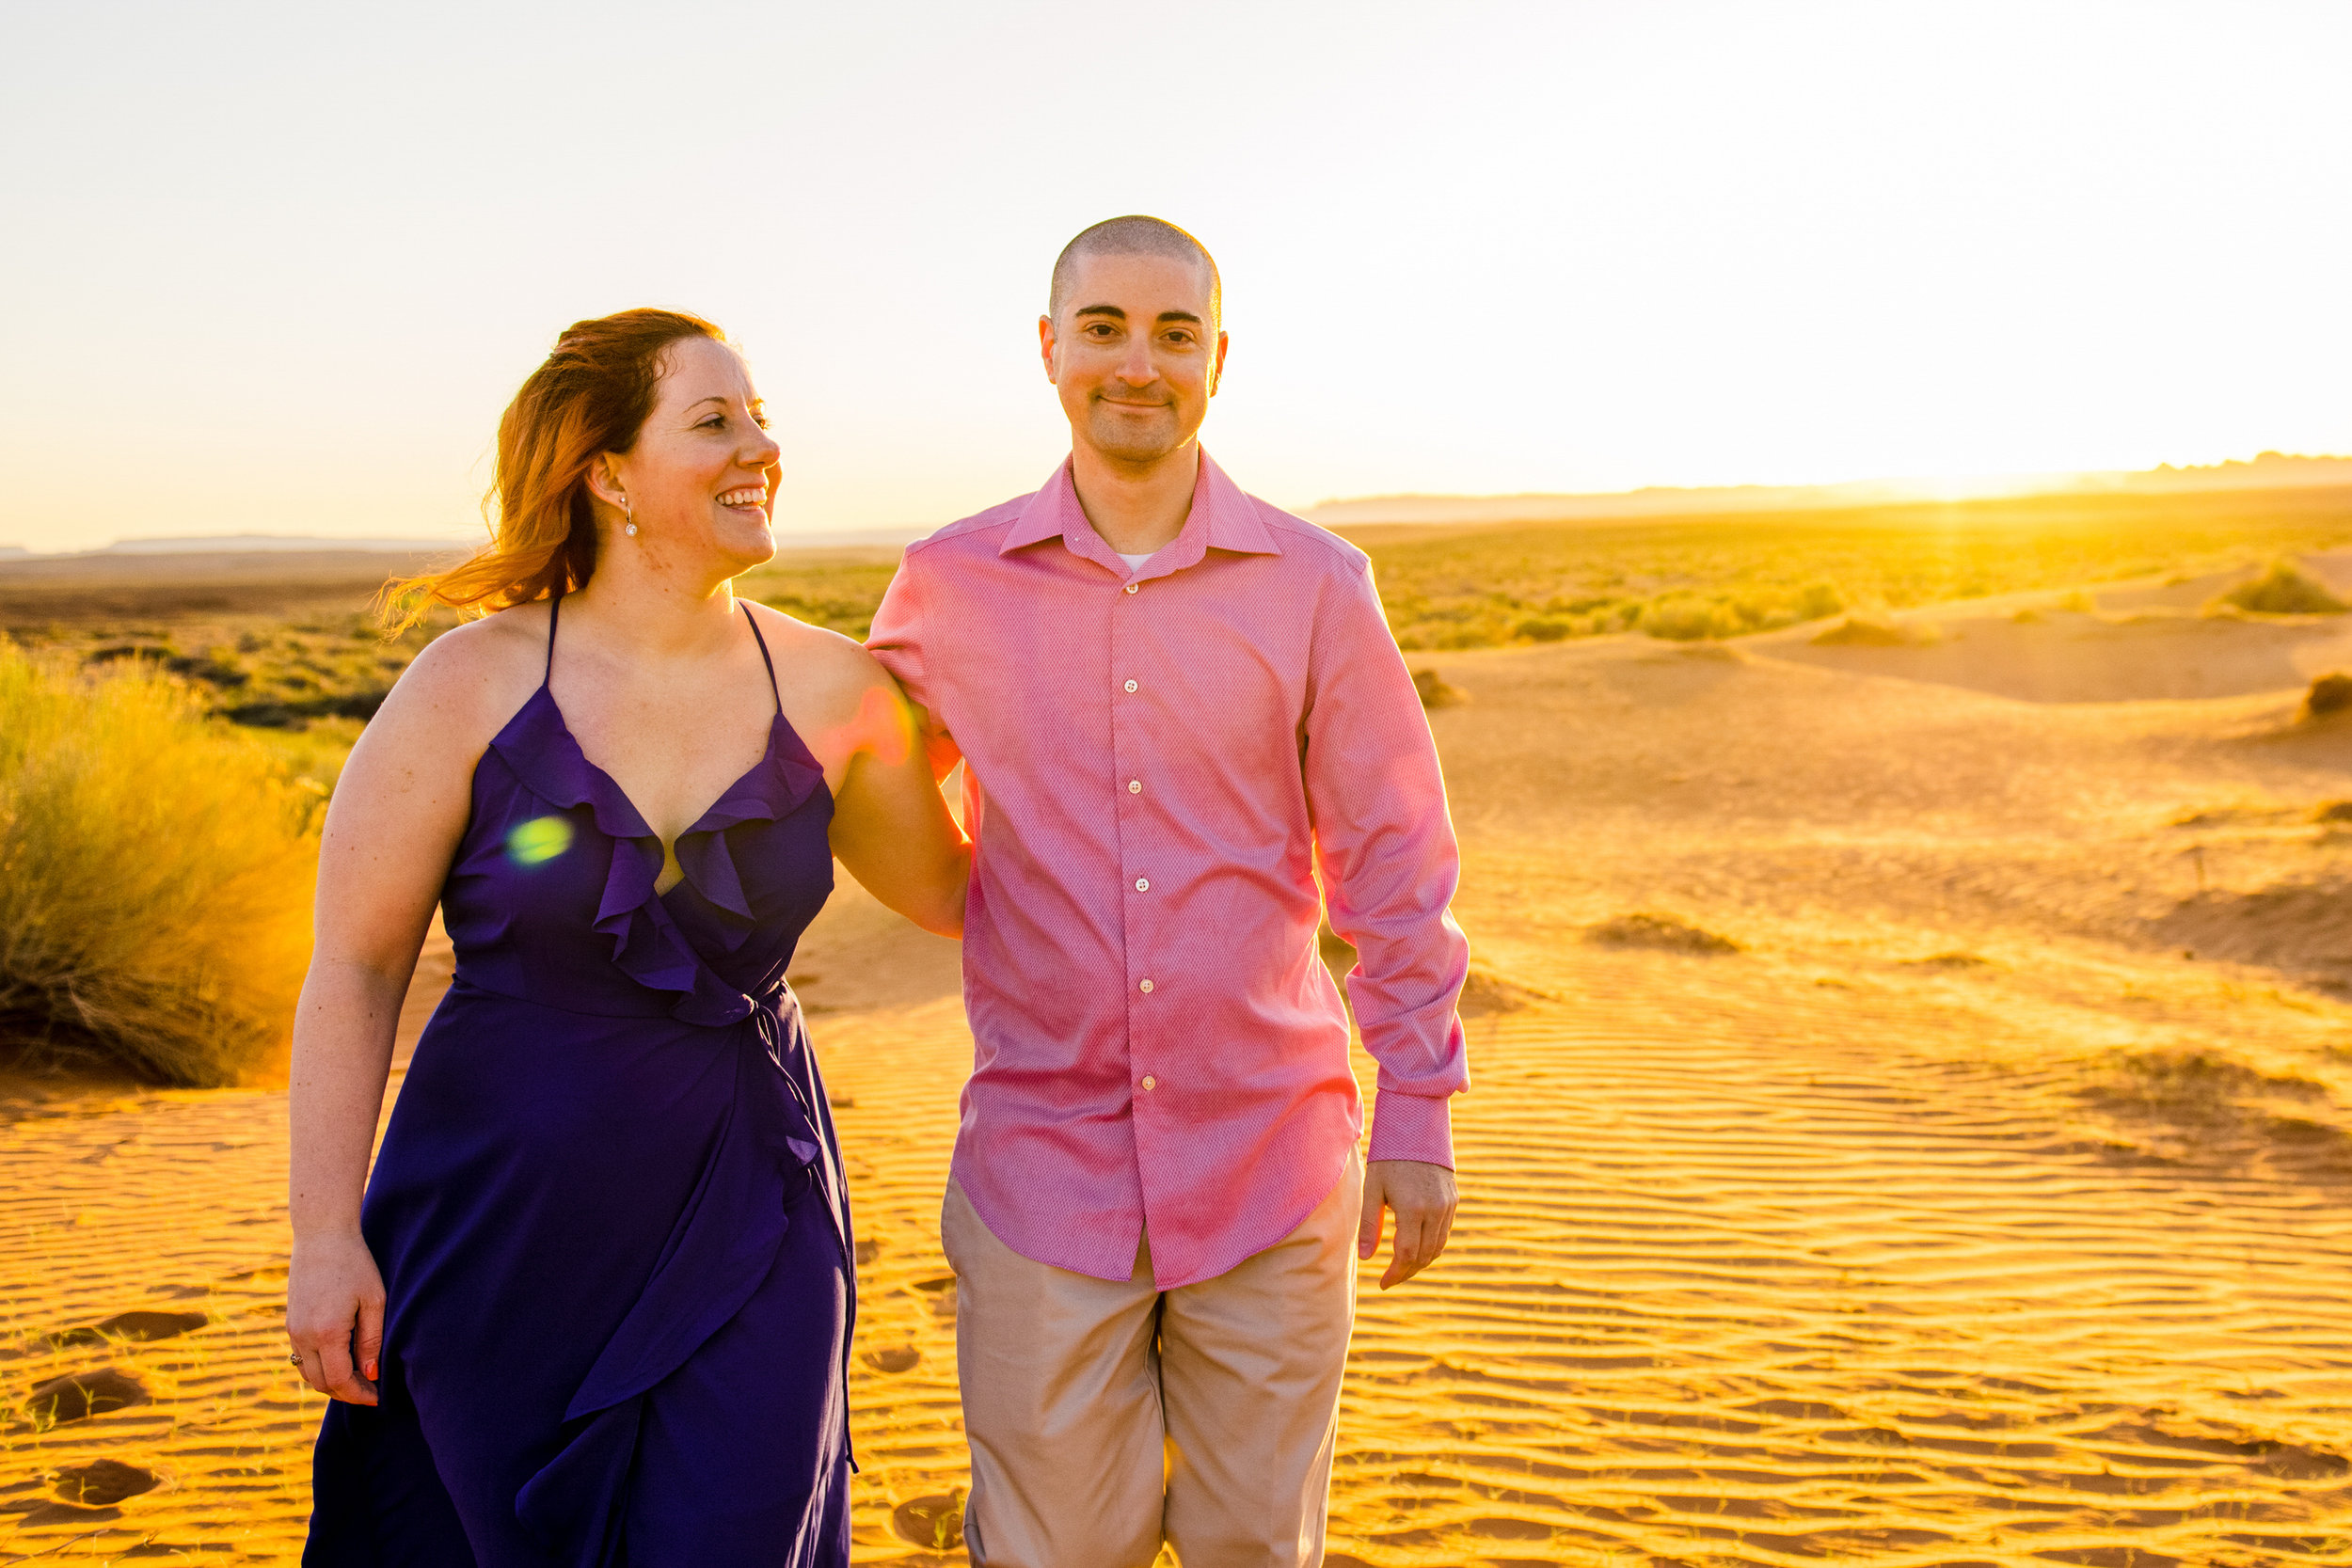 MonumentValleyEngagement-Alicia&Rob-1539.jpg